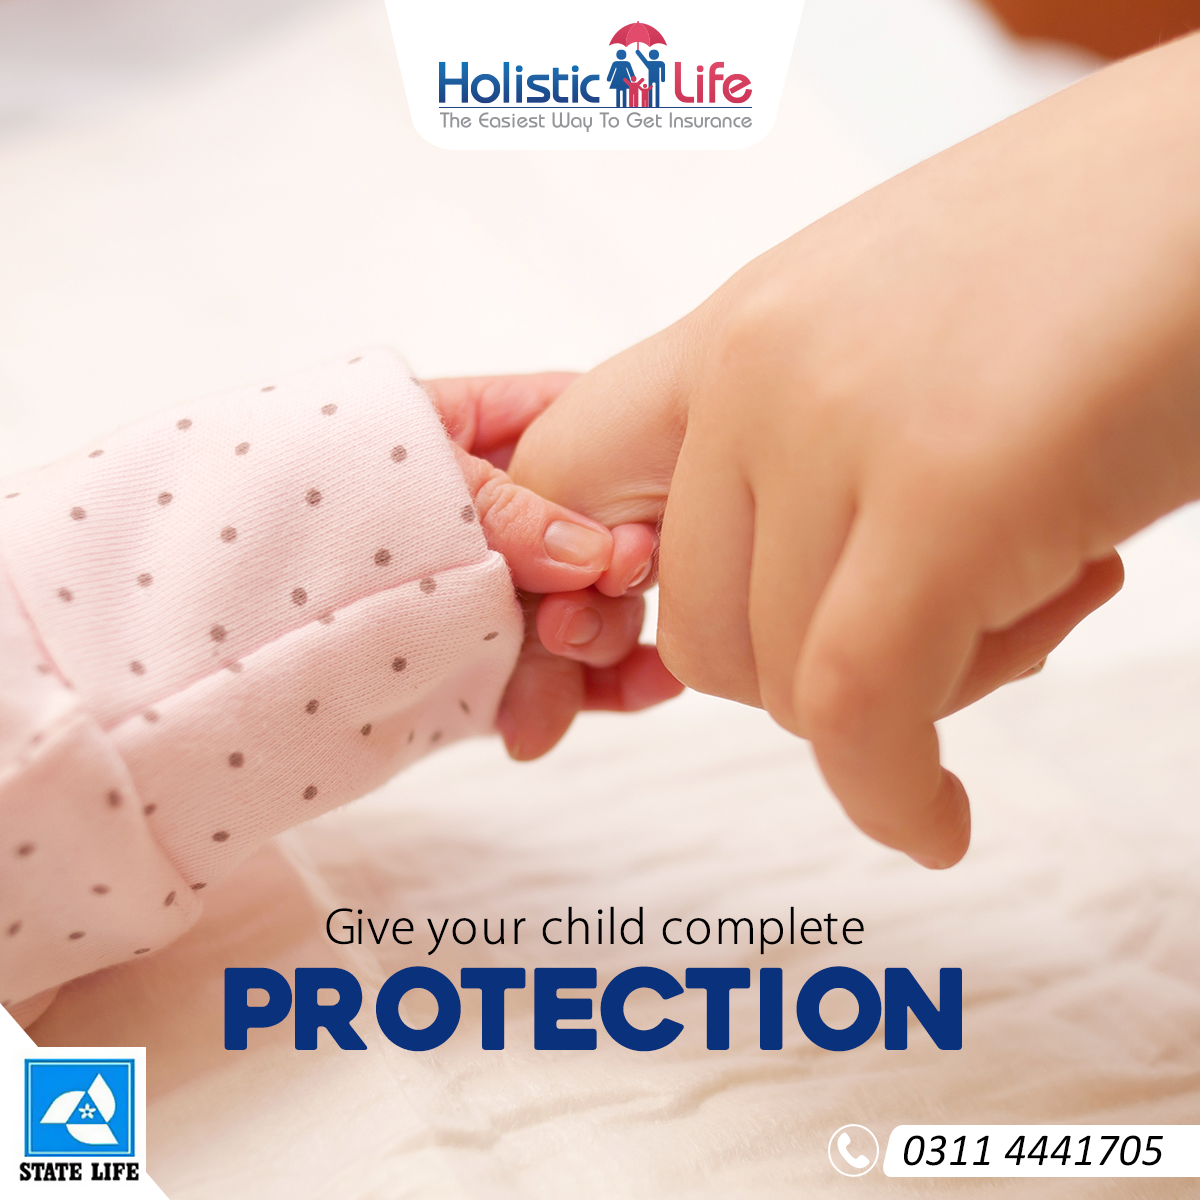 Child Protection Plan Child Protection How To Plan Children